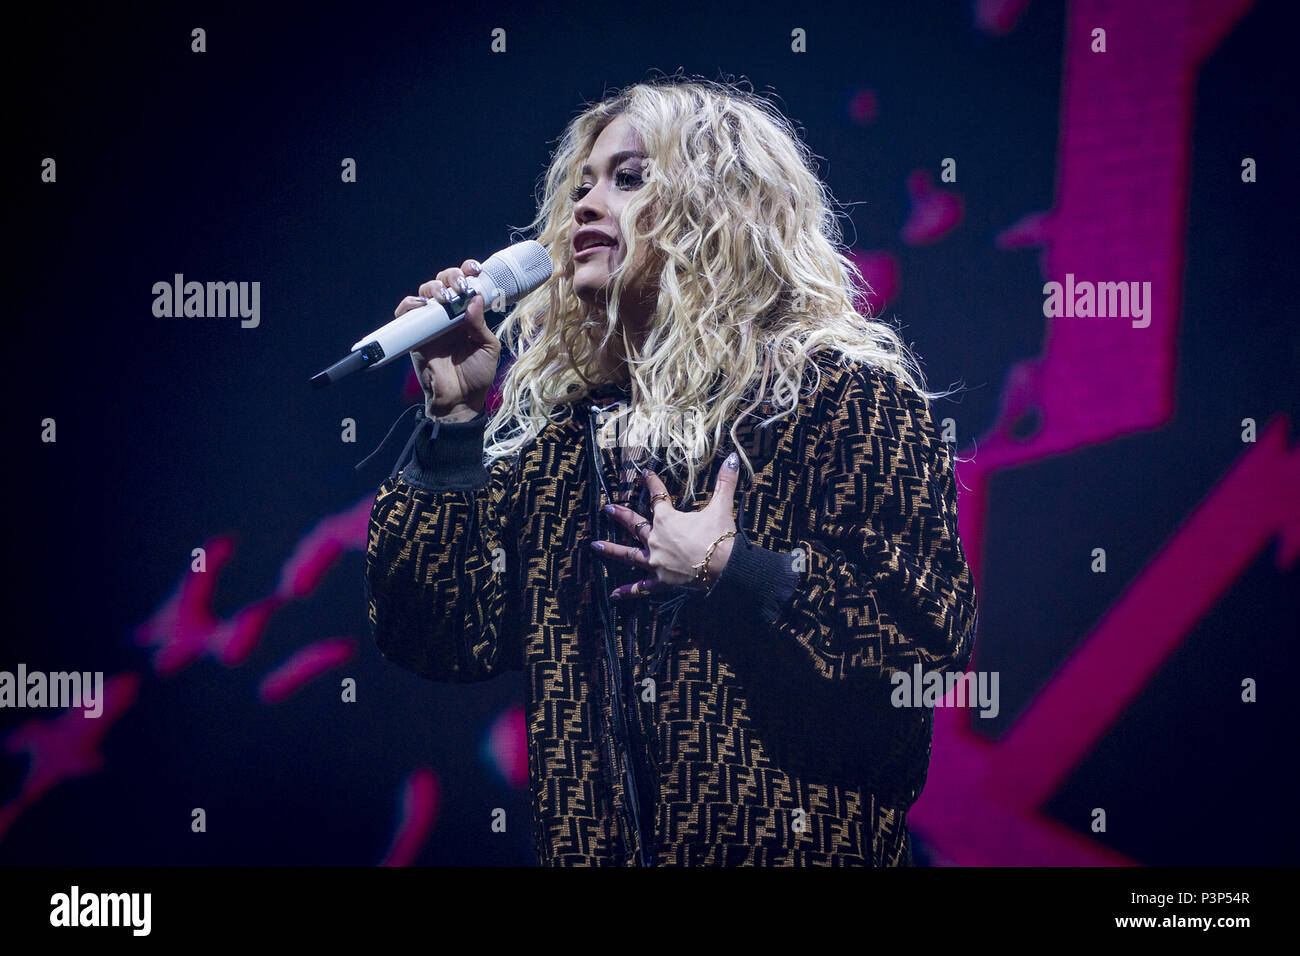 Rita Ora Girls Tour at Brixton Academy  Featuring: Rita Ora Where: London, United Kingdom When: 18 May 2018 Credit: Neil Lupin/WENN Stock Photo